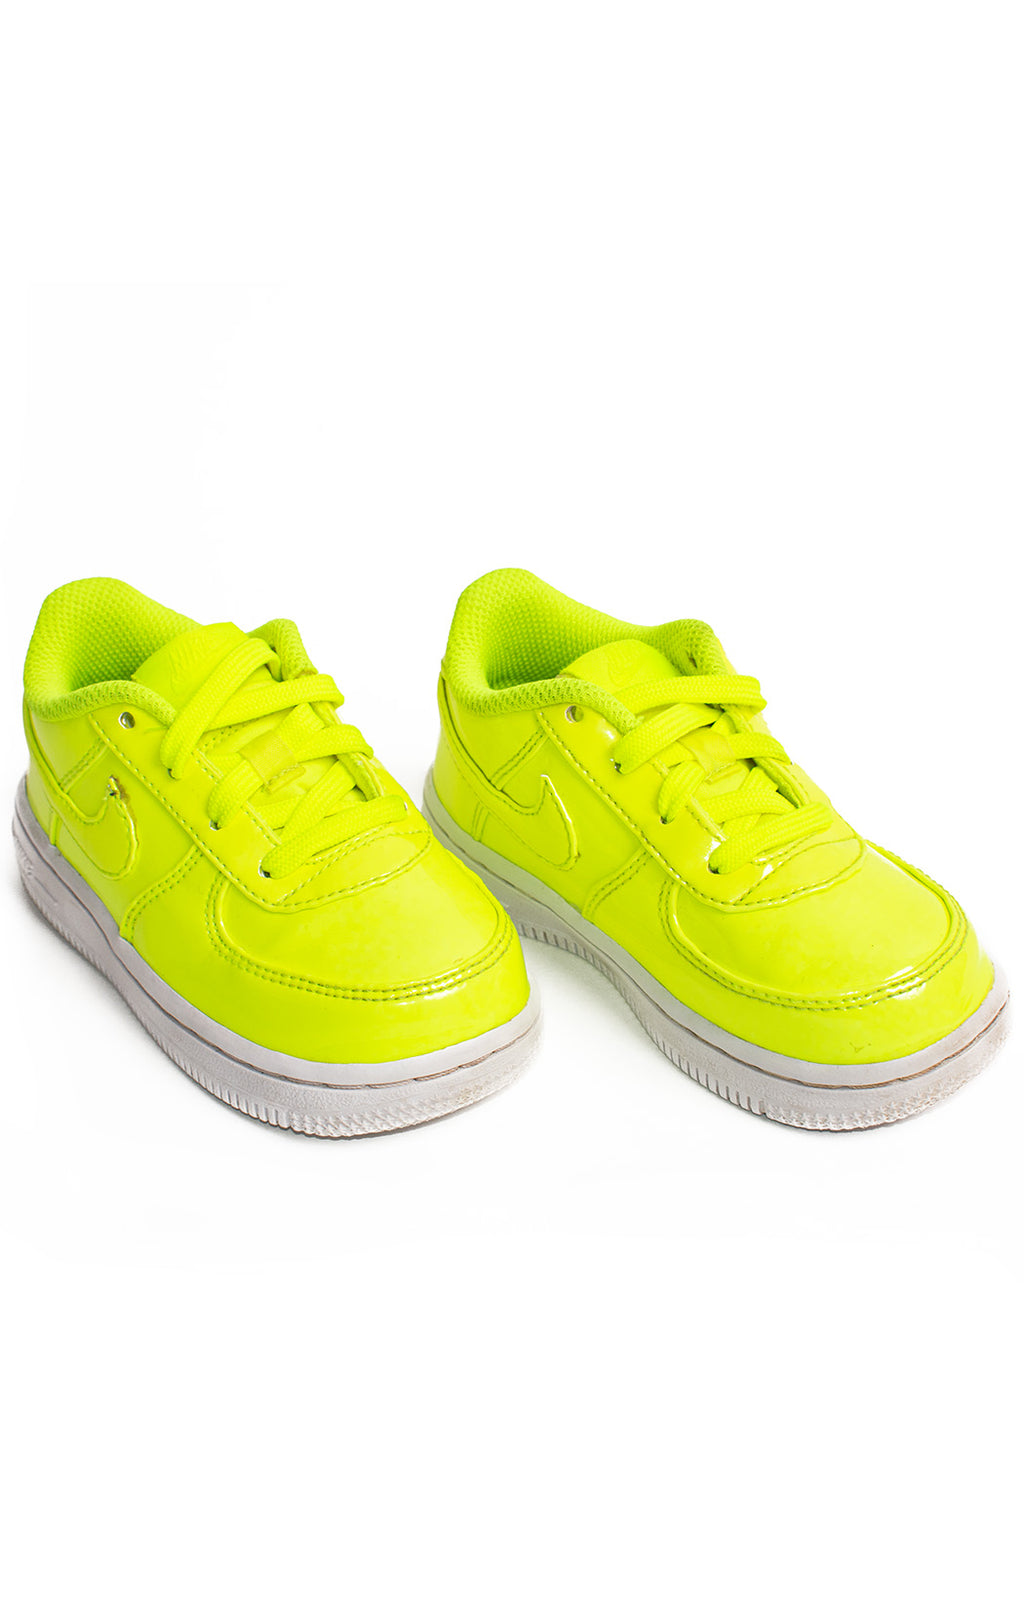 Front view of NIKE Tennis shoes Size: 8 children